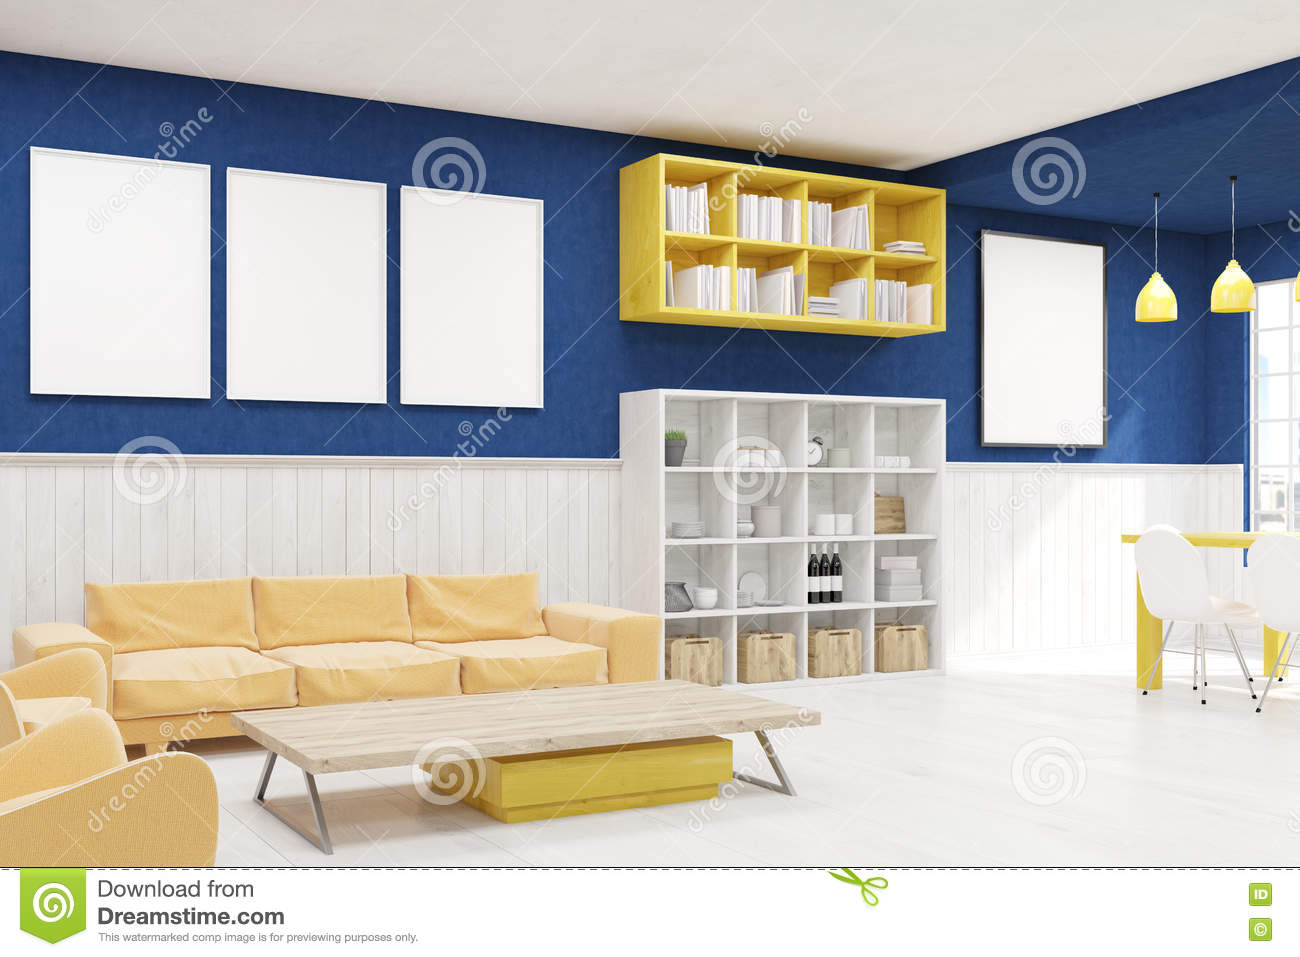 Blue wall living room stock illustration. Illustration of lamp ...